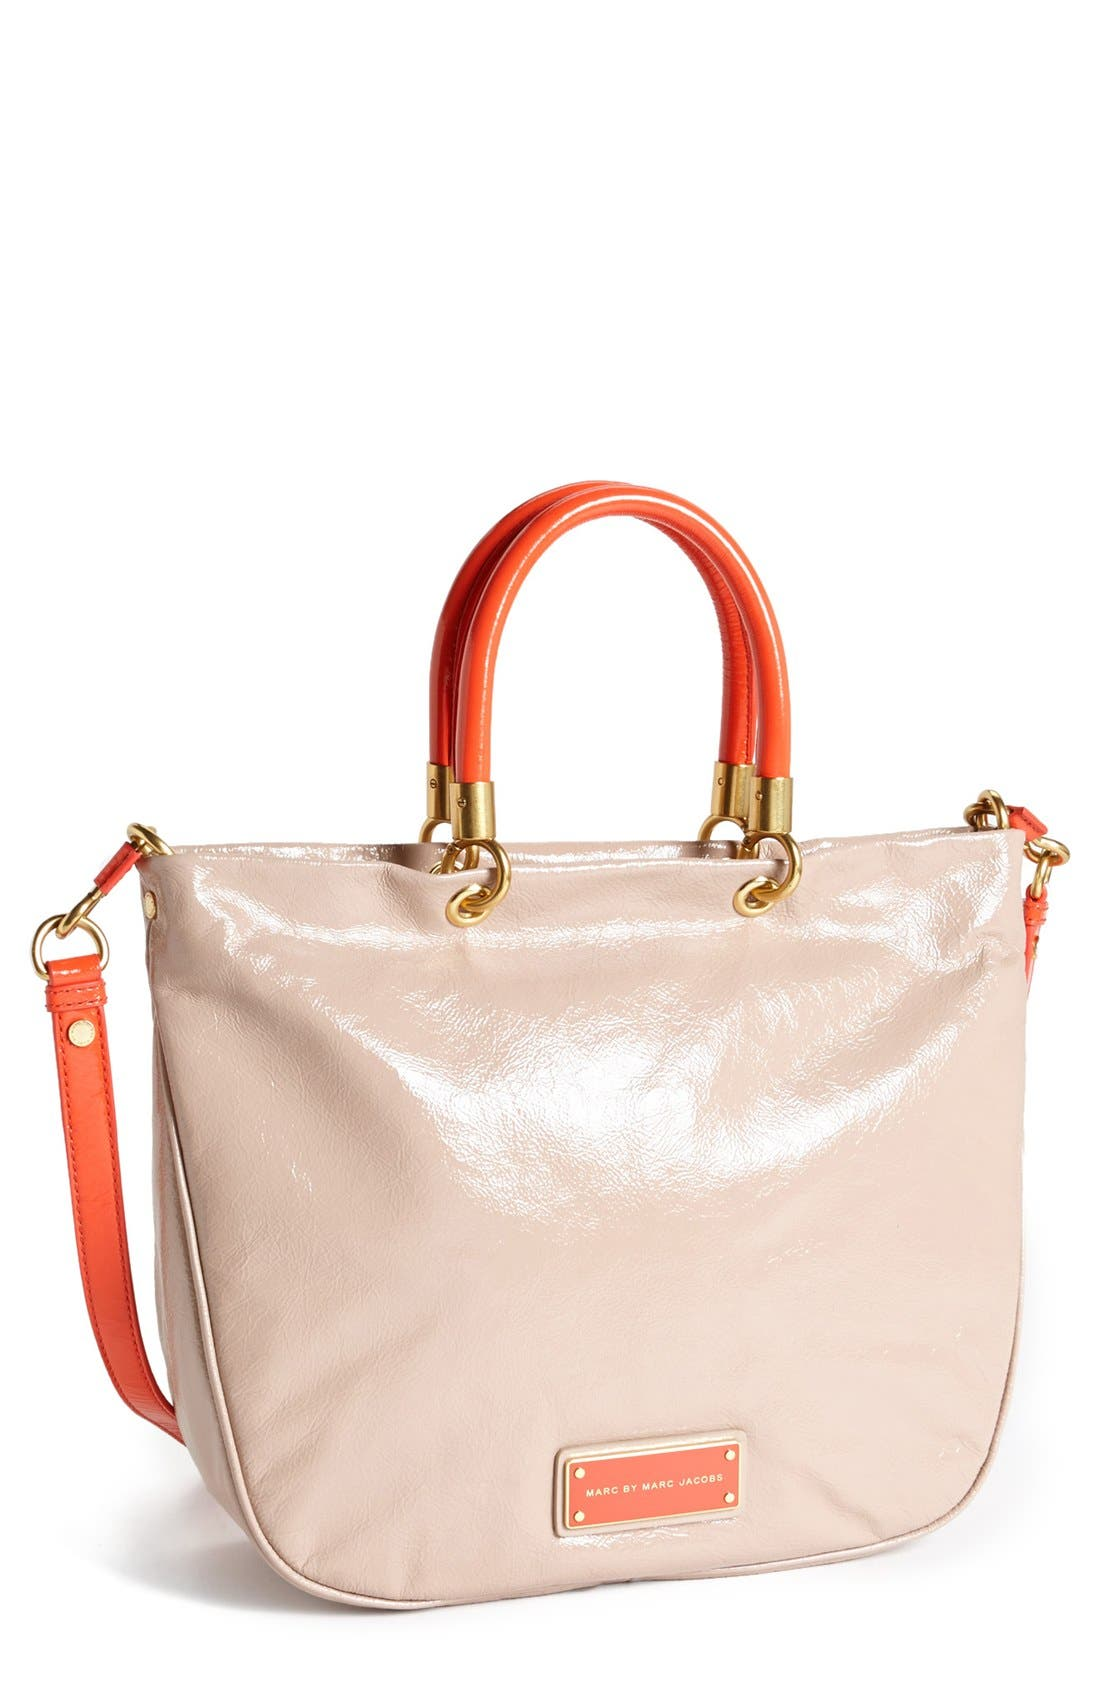 Alternate Image 1 Selected - MARC BY MARC JACOBS 'Mini' Glazed Shopper